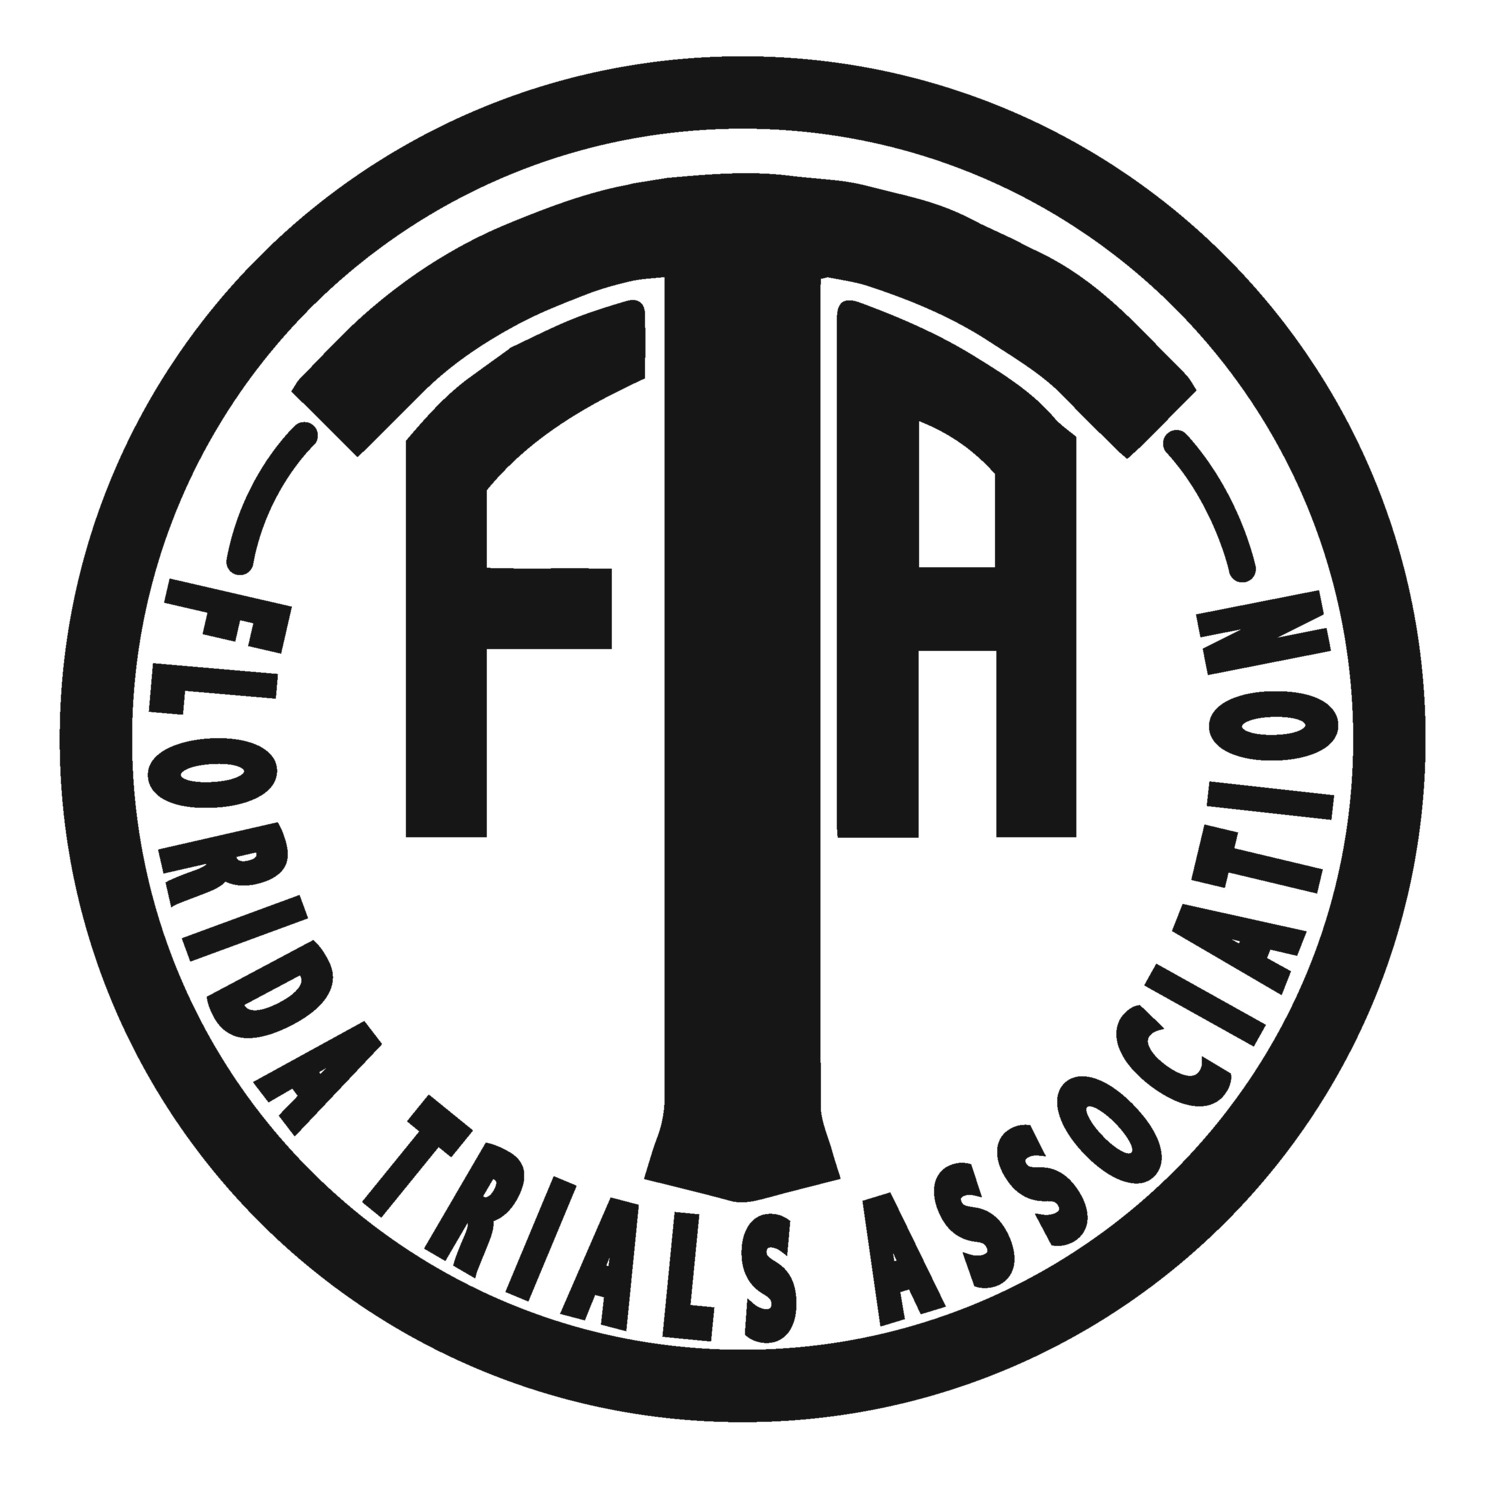 Florida Trials Association